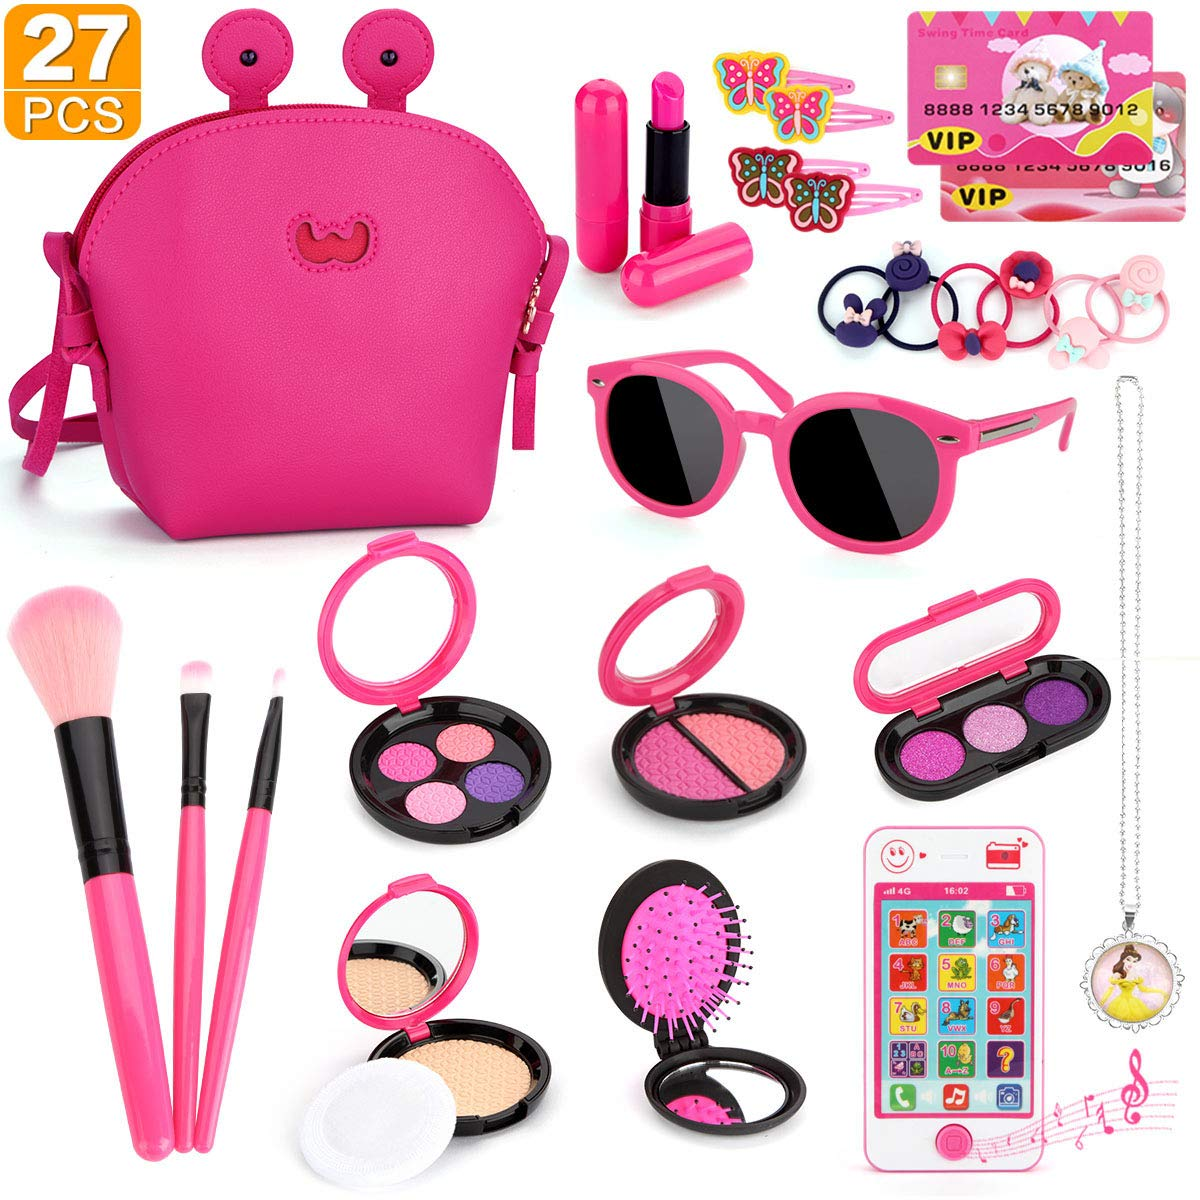 Kids Makeup Kit - Girl Pretend Play Makeup My First Purse Toy for Toddler Gifts Including Pink Princess Purse, Smartphone, Sunglasses, Credit Card, Lipstick, Brush, Lights Up & Make Real Life Sounds by Tudoccy